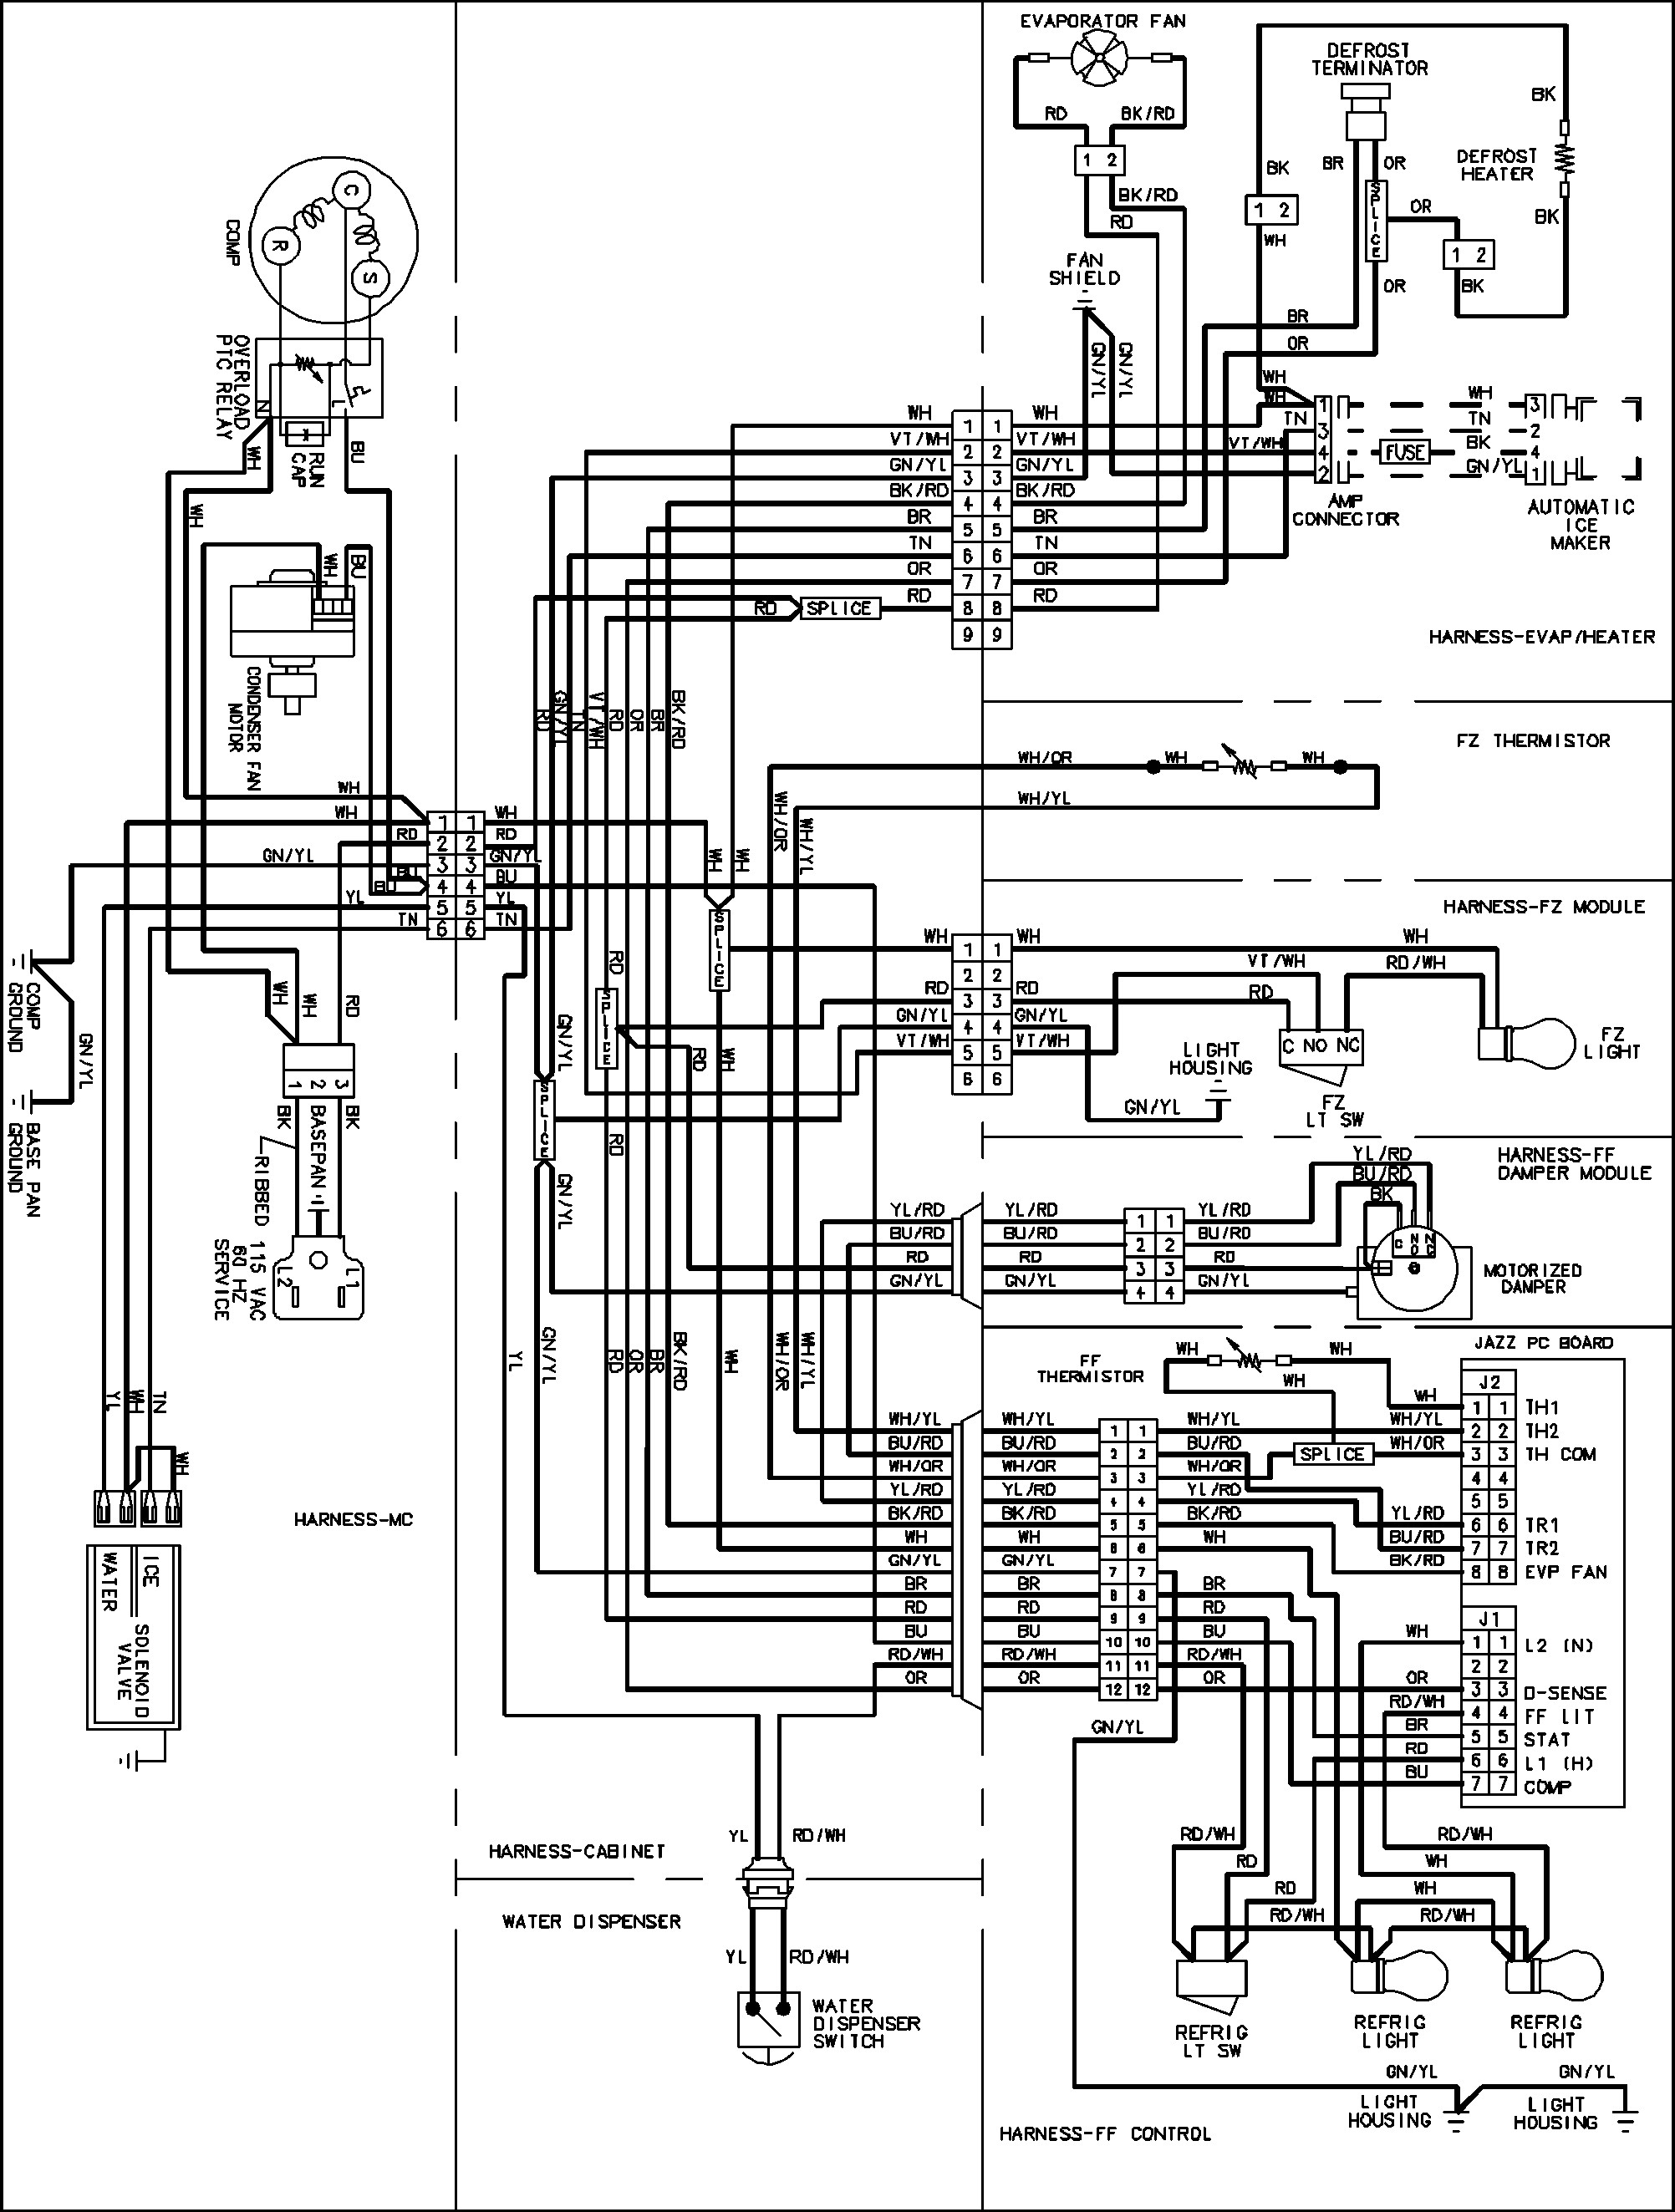 parts diagram on wiring diagram whirlpool refrigerator ice maker